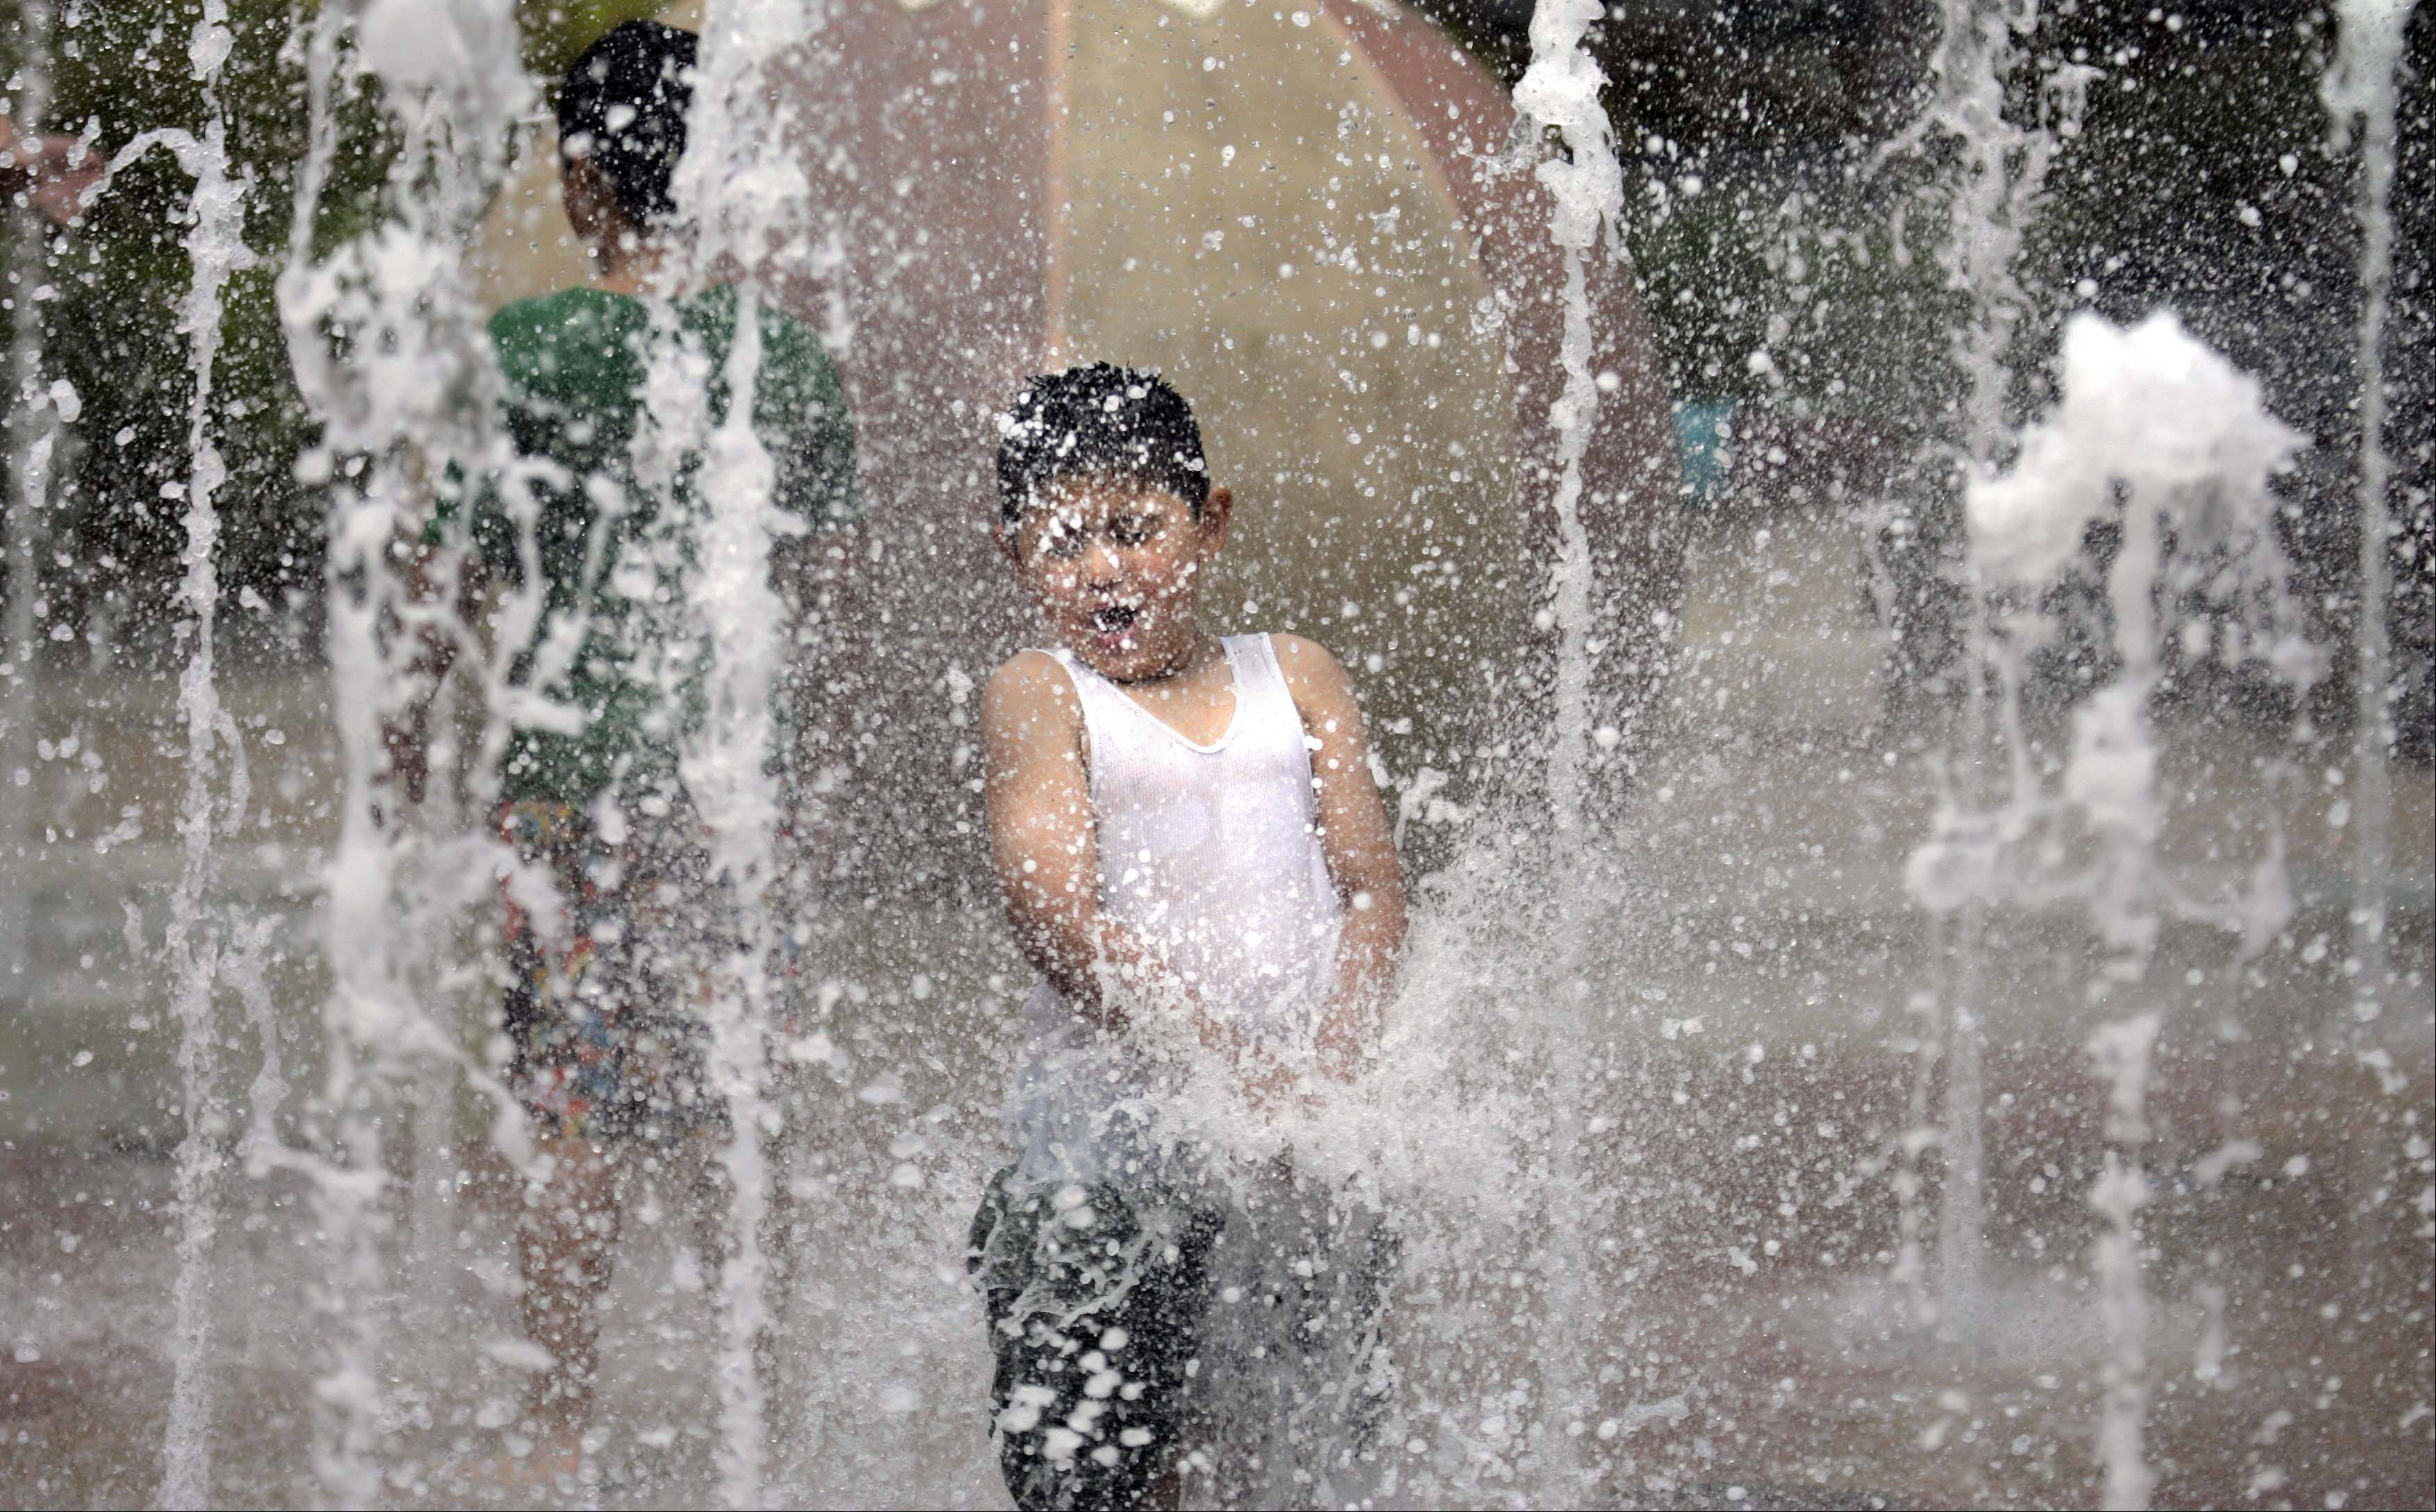 Omar Contreres, 5, of South Elgin, enjoys the water features at Festival Park in Elgin as Temperatures reached into the high 90s Thursday in the Fox Valley area.